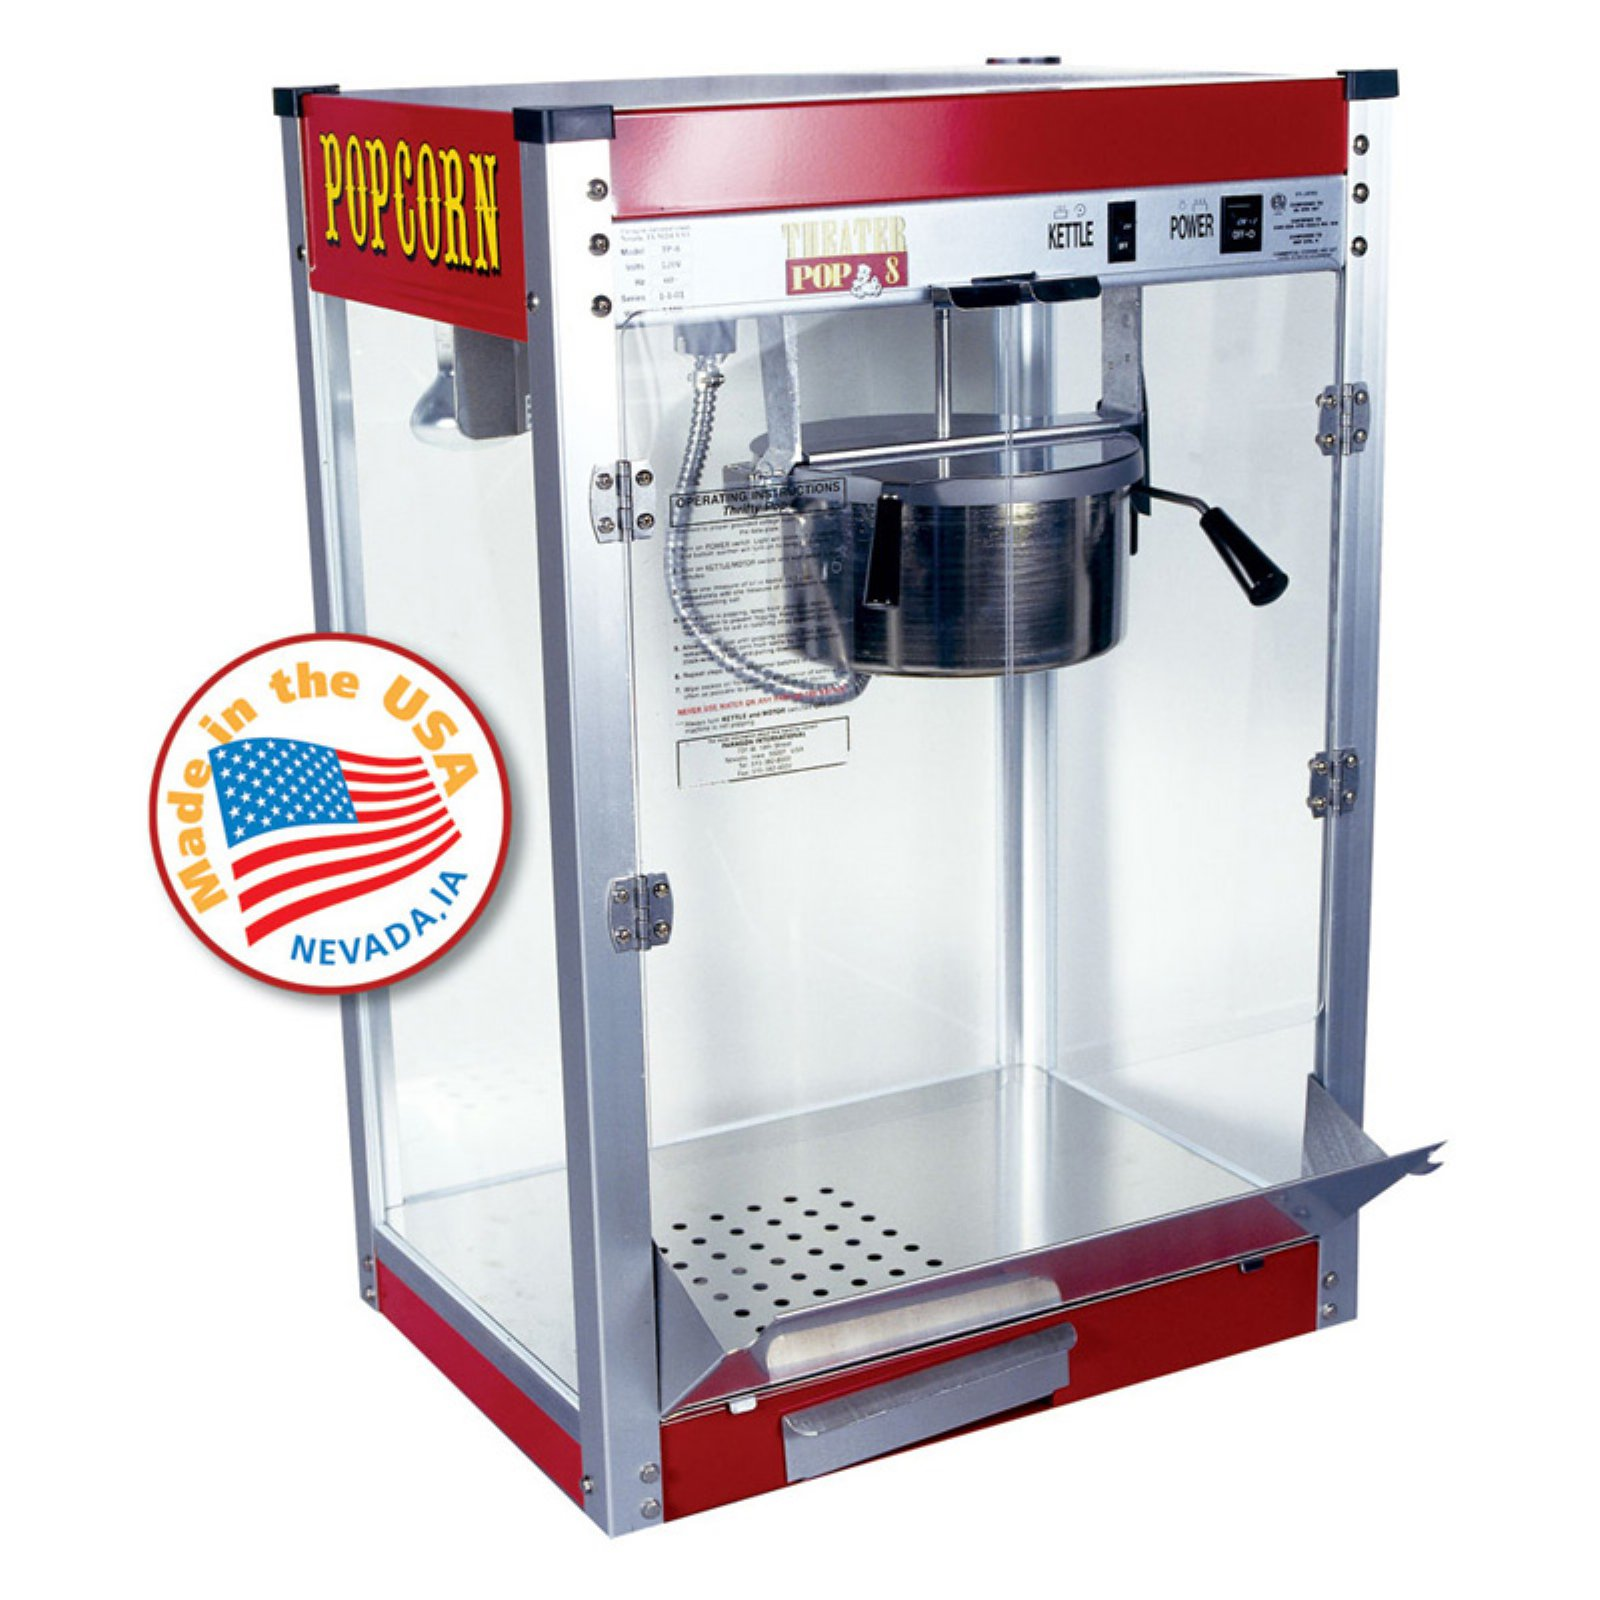 Paragon Theater Pop 8 oz. Popcorn Machine